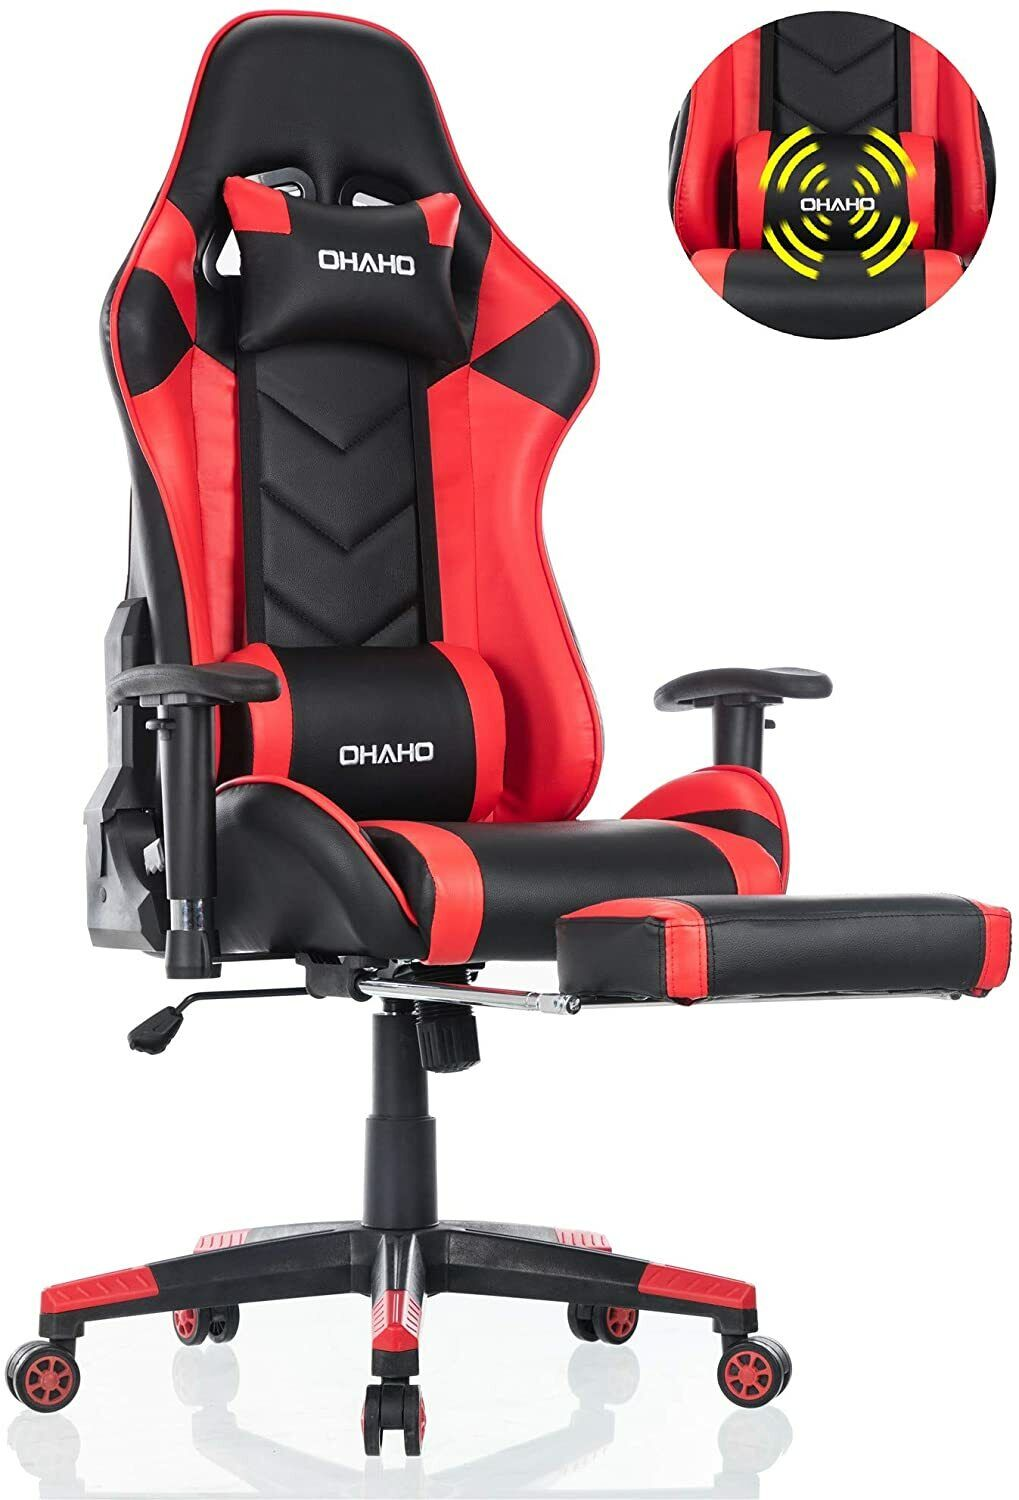 Computer Games - OHAHO Ergonomic Computer Gaming Chair with Footrest Lumbar Massage Support